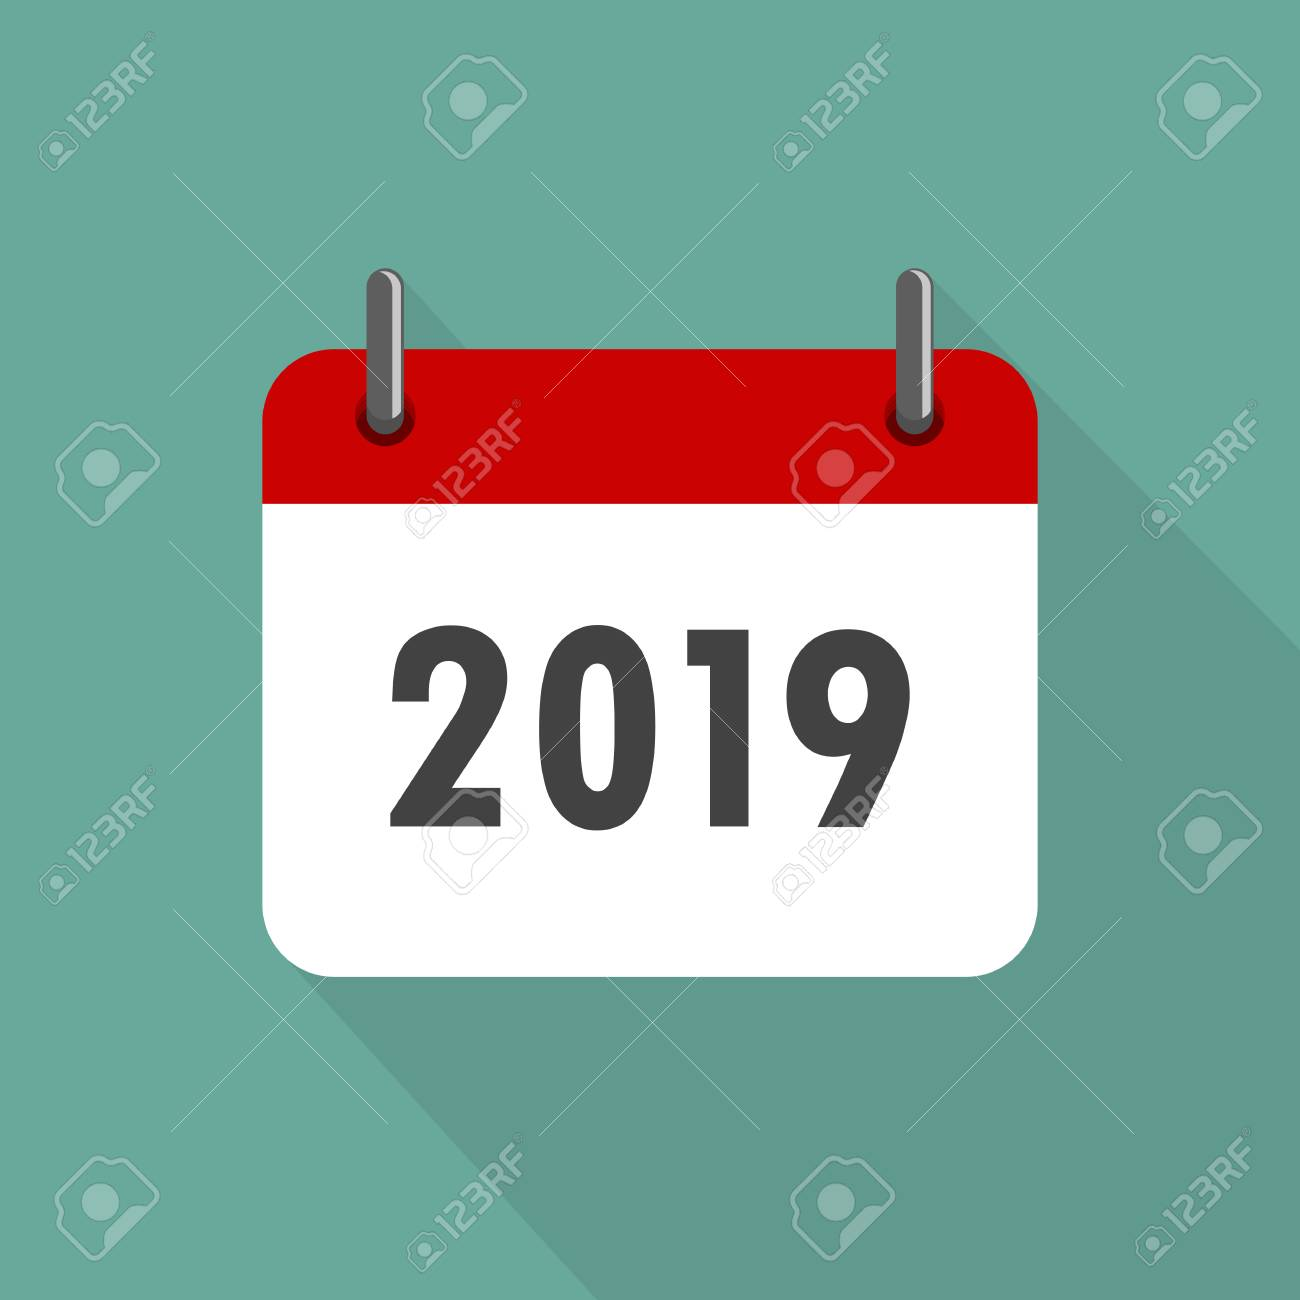 calendar icon 2019 in flat design vector illustration happy new year 2019 stock vector